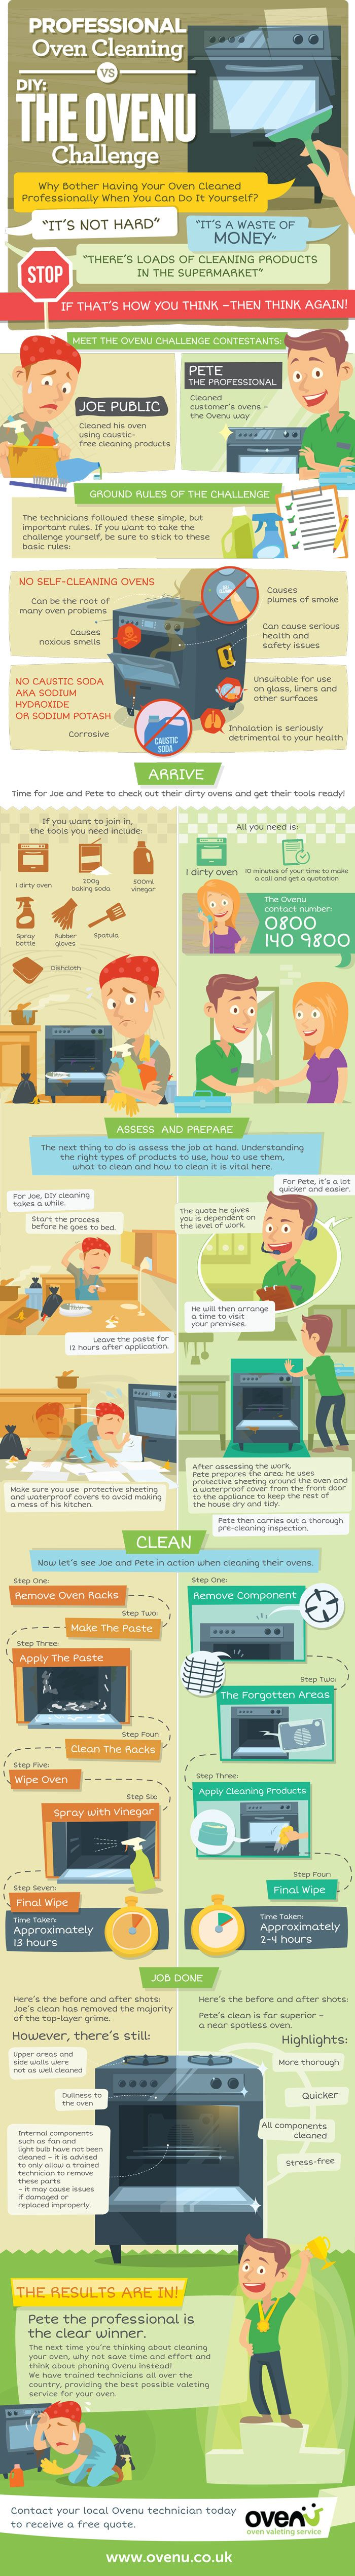 Professional Oven Cleaning Vs DIY #infographic #DIY #Cleaning